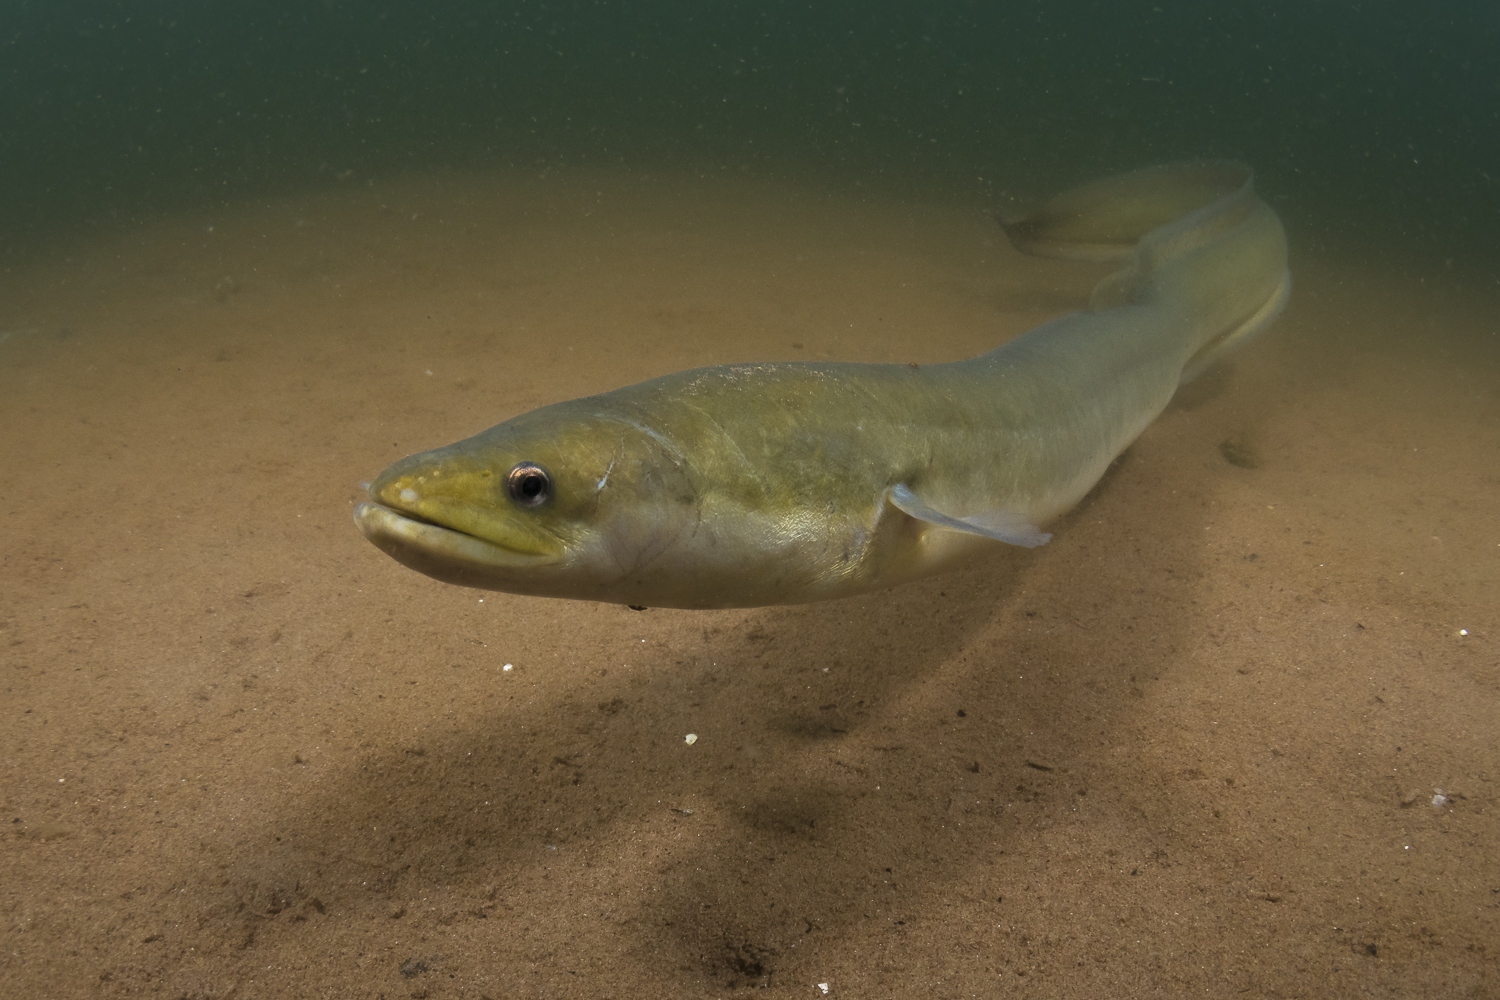 Cute? Beautiful? Creepy? Perhaps all three, but to me the American eel is one of the most interesting fishes in the world. After growing into an adult in Tracadie Bay, this eel will eventually migrate to the middle of the Atlantic Ocean to spawn and then die. (Sean Landsman)